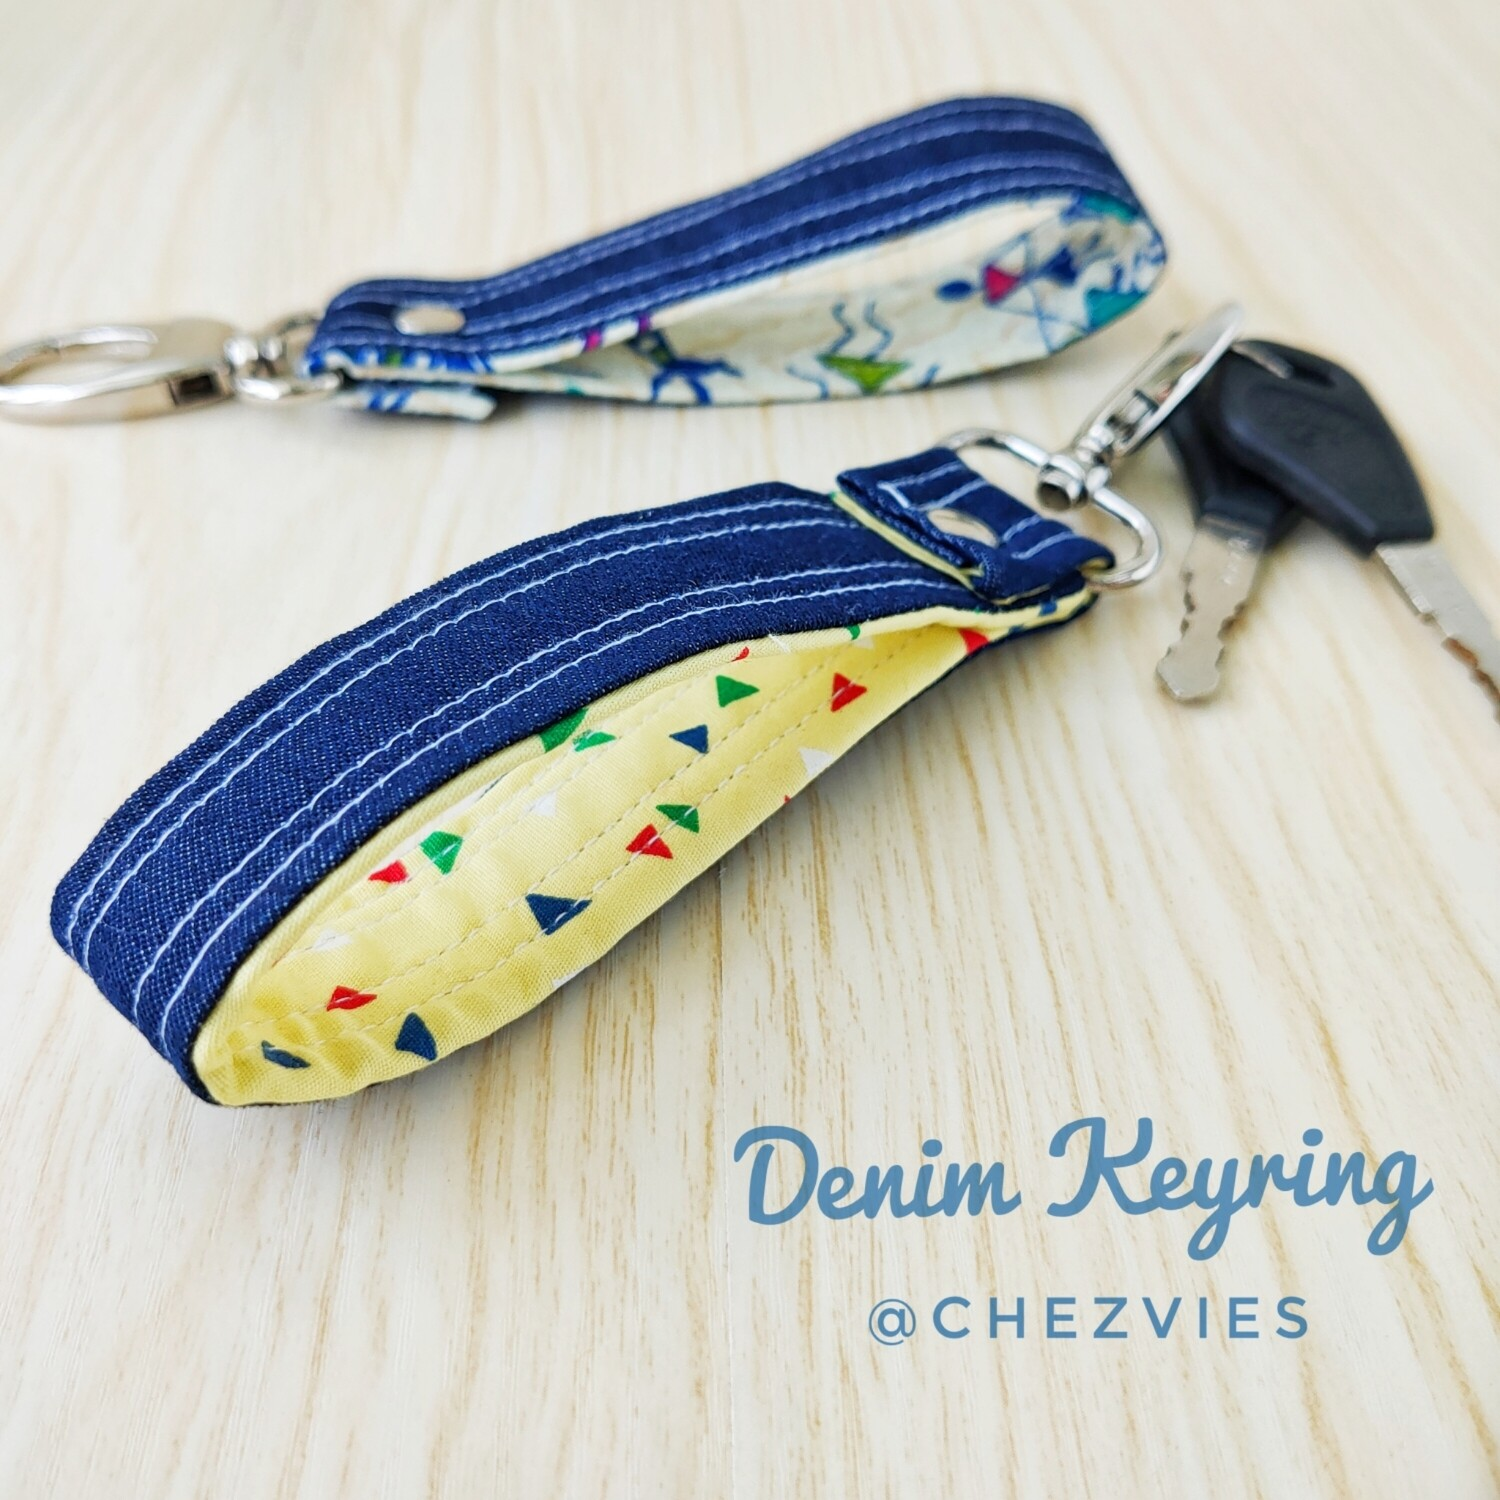 Denim Keyring - choose your own fabric  combo